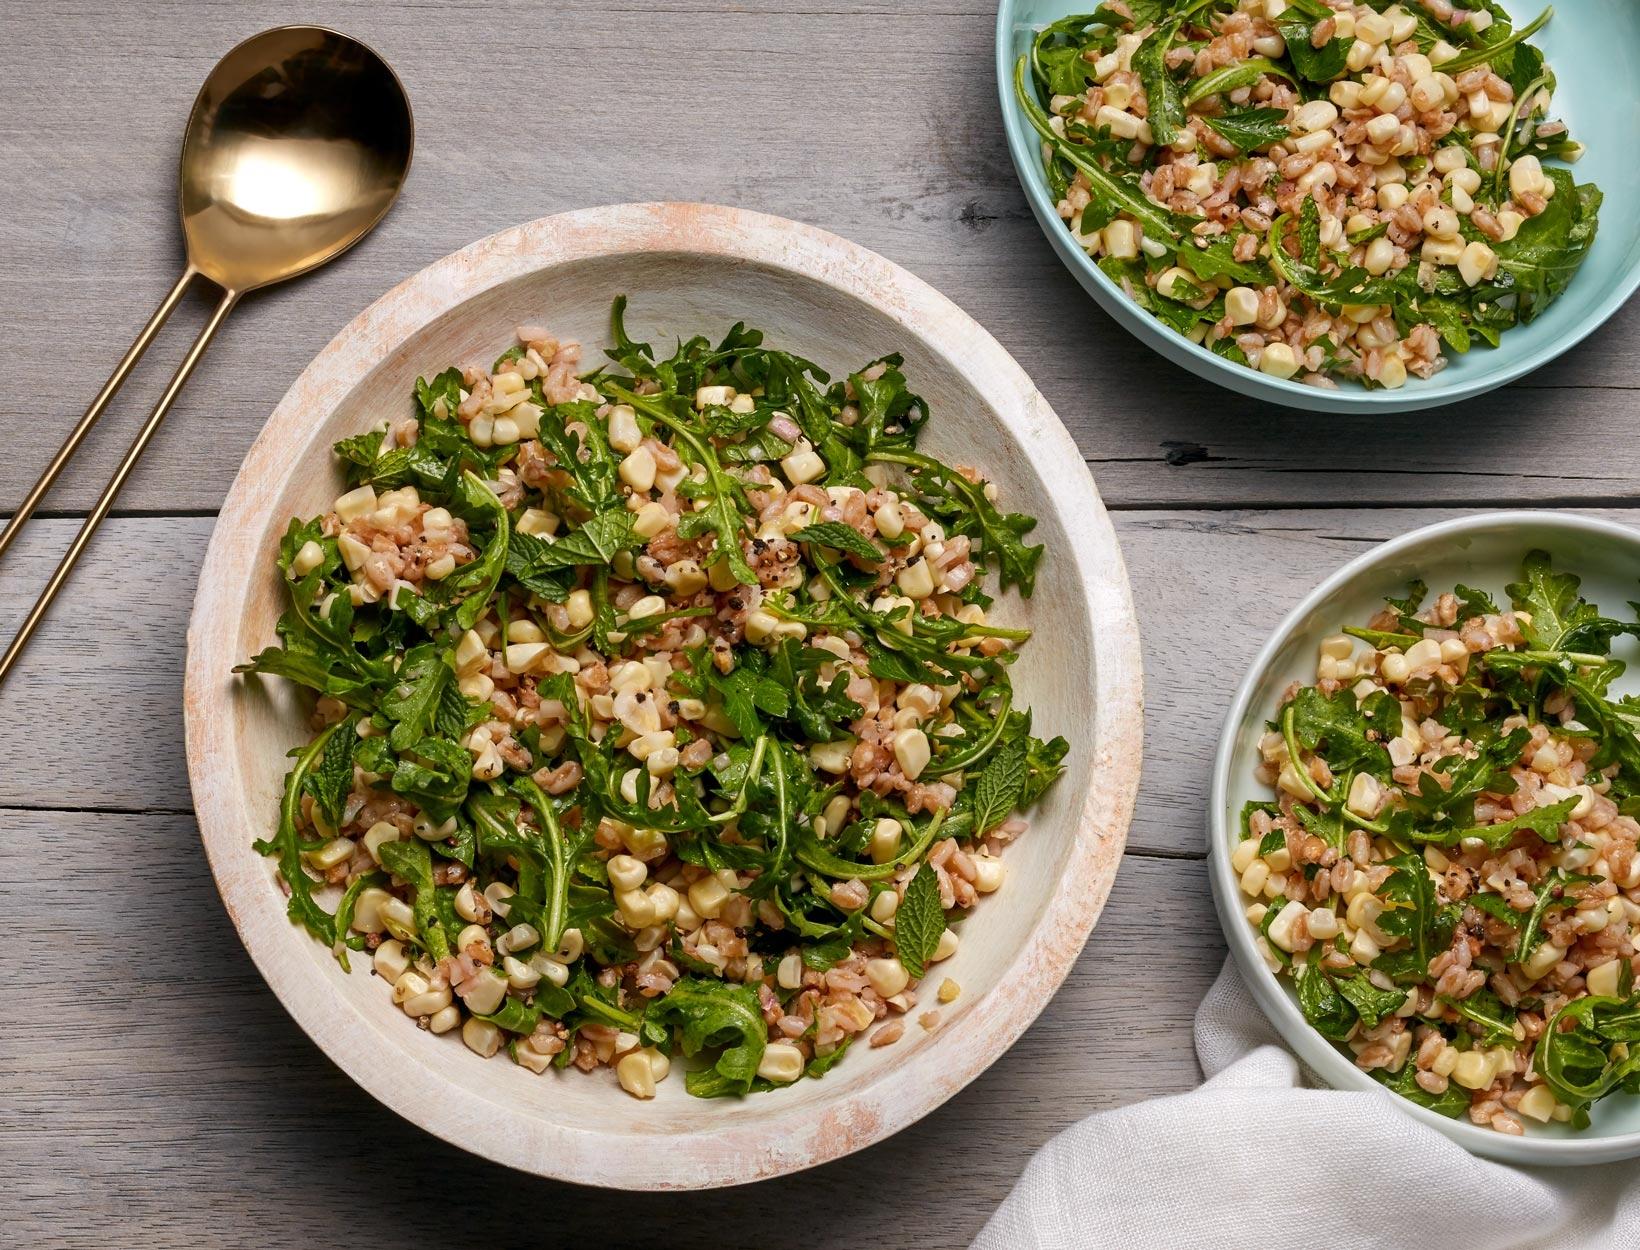 Farro Salad with Corn, Arugula, and Fresh Herbs